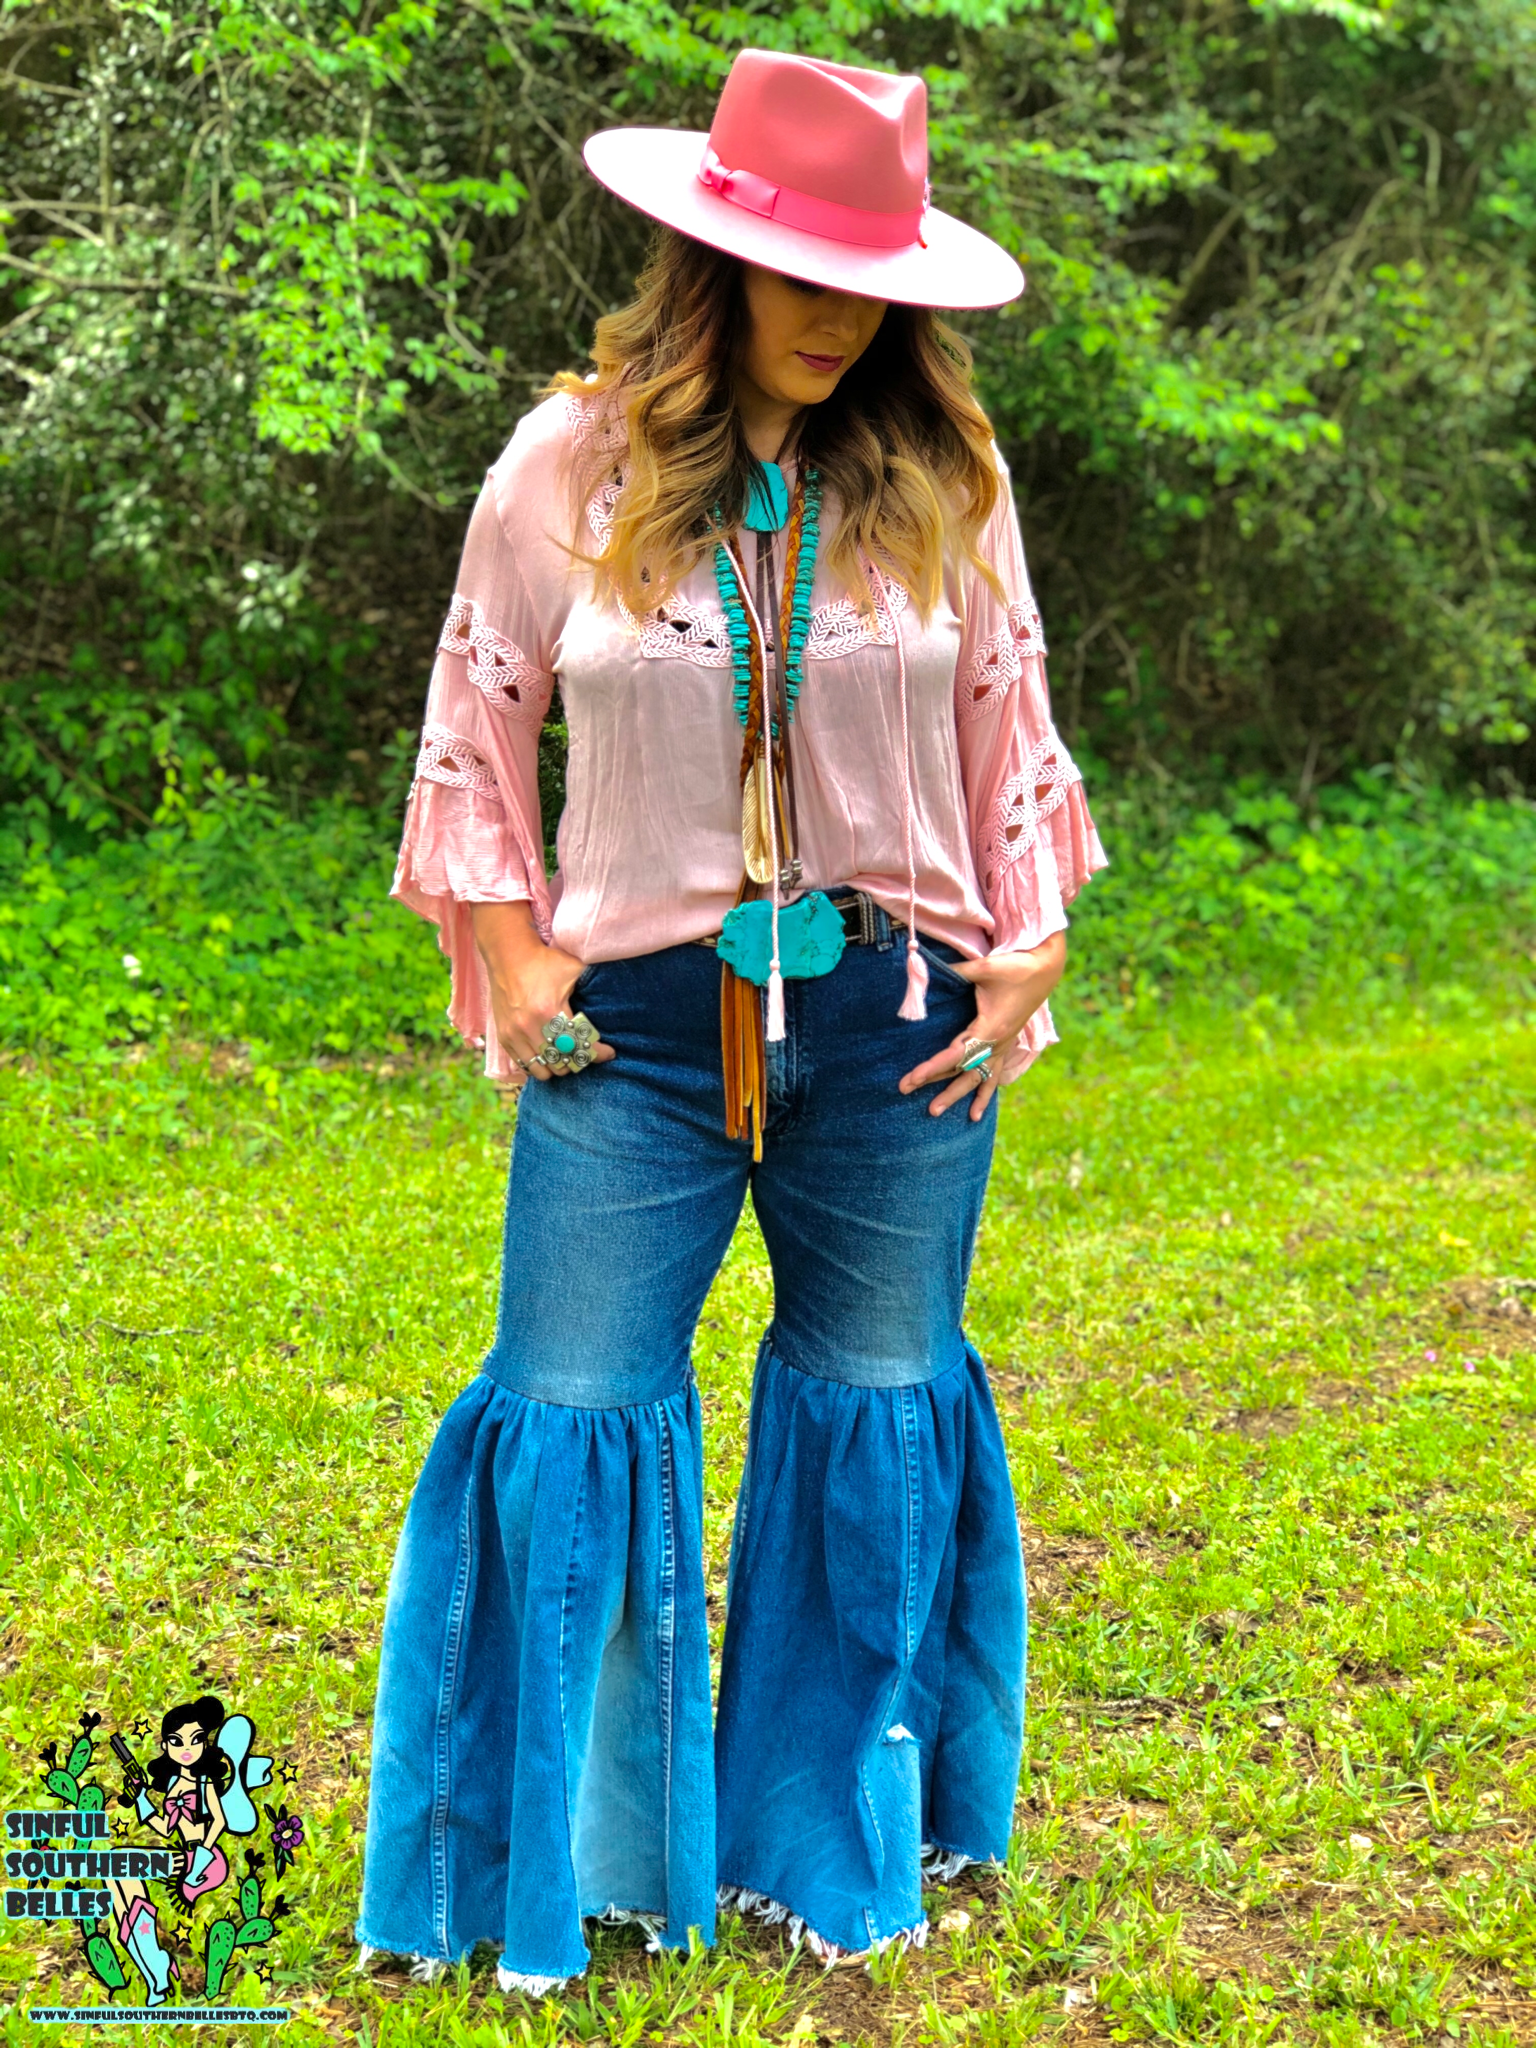 BLuE JeAn BaBy WrAnGLeR BeLL BotToMs